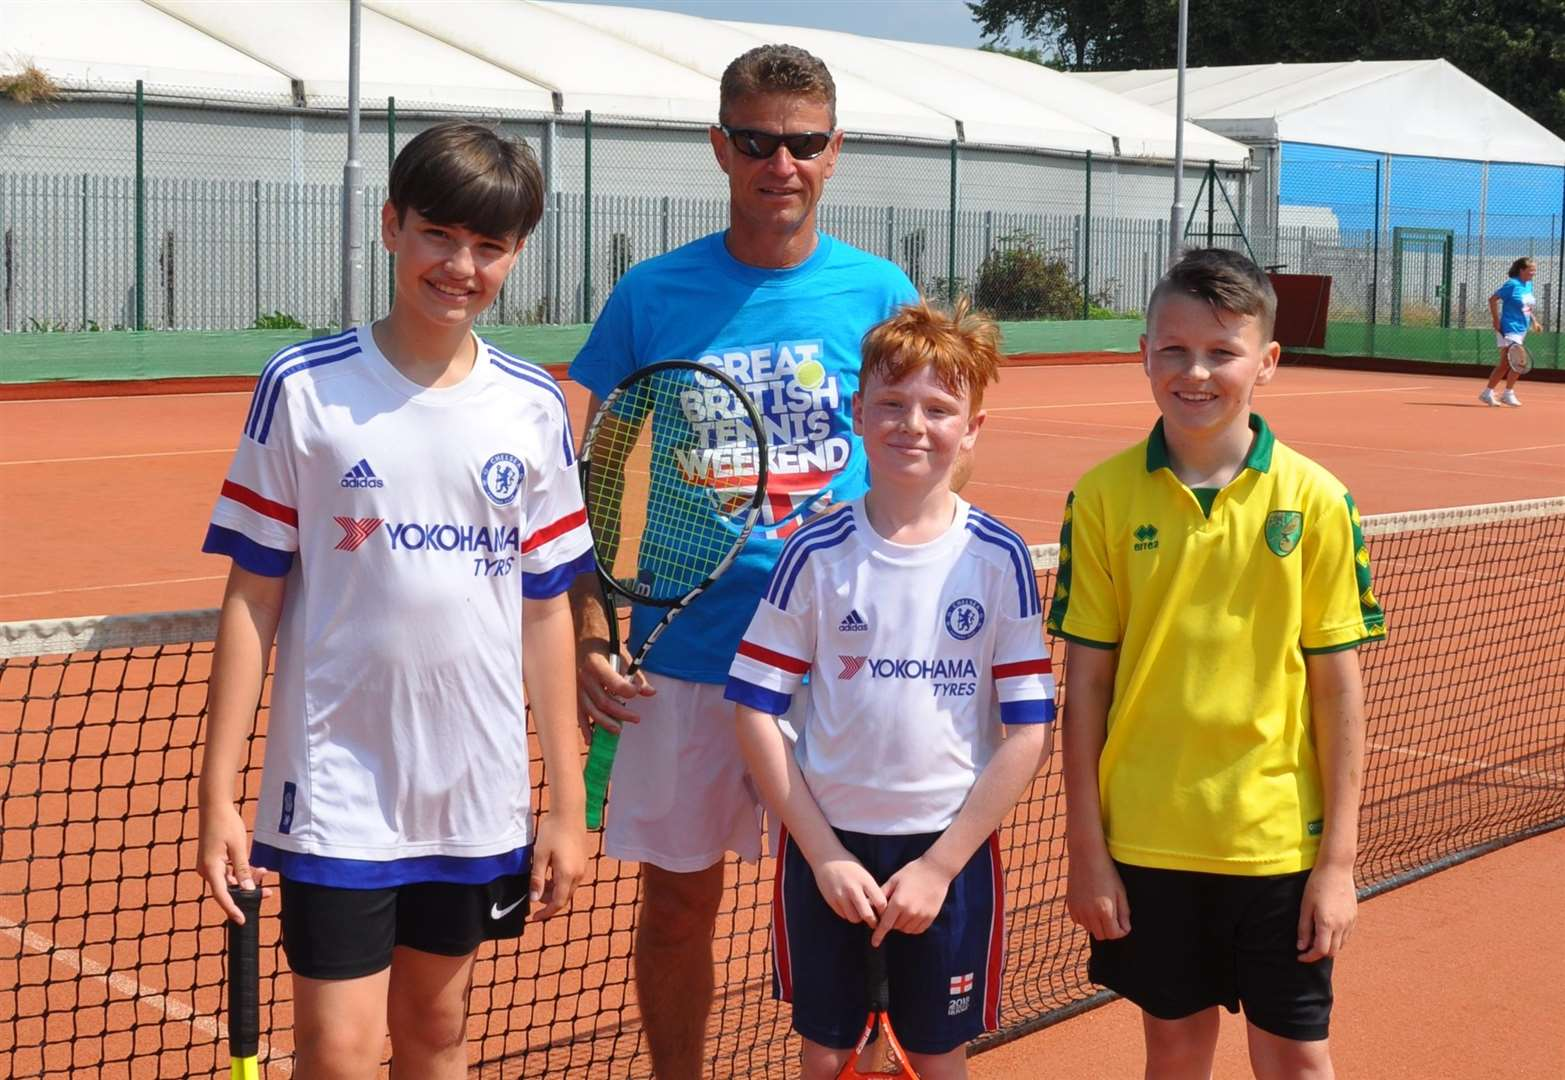 Wisbech Tennis Club to host four days of holiday activities